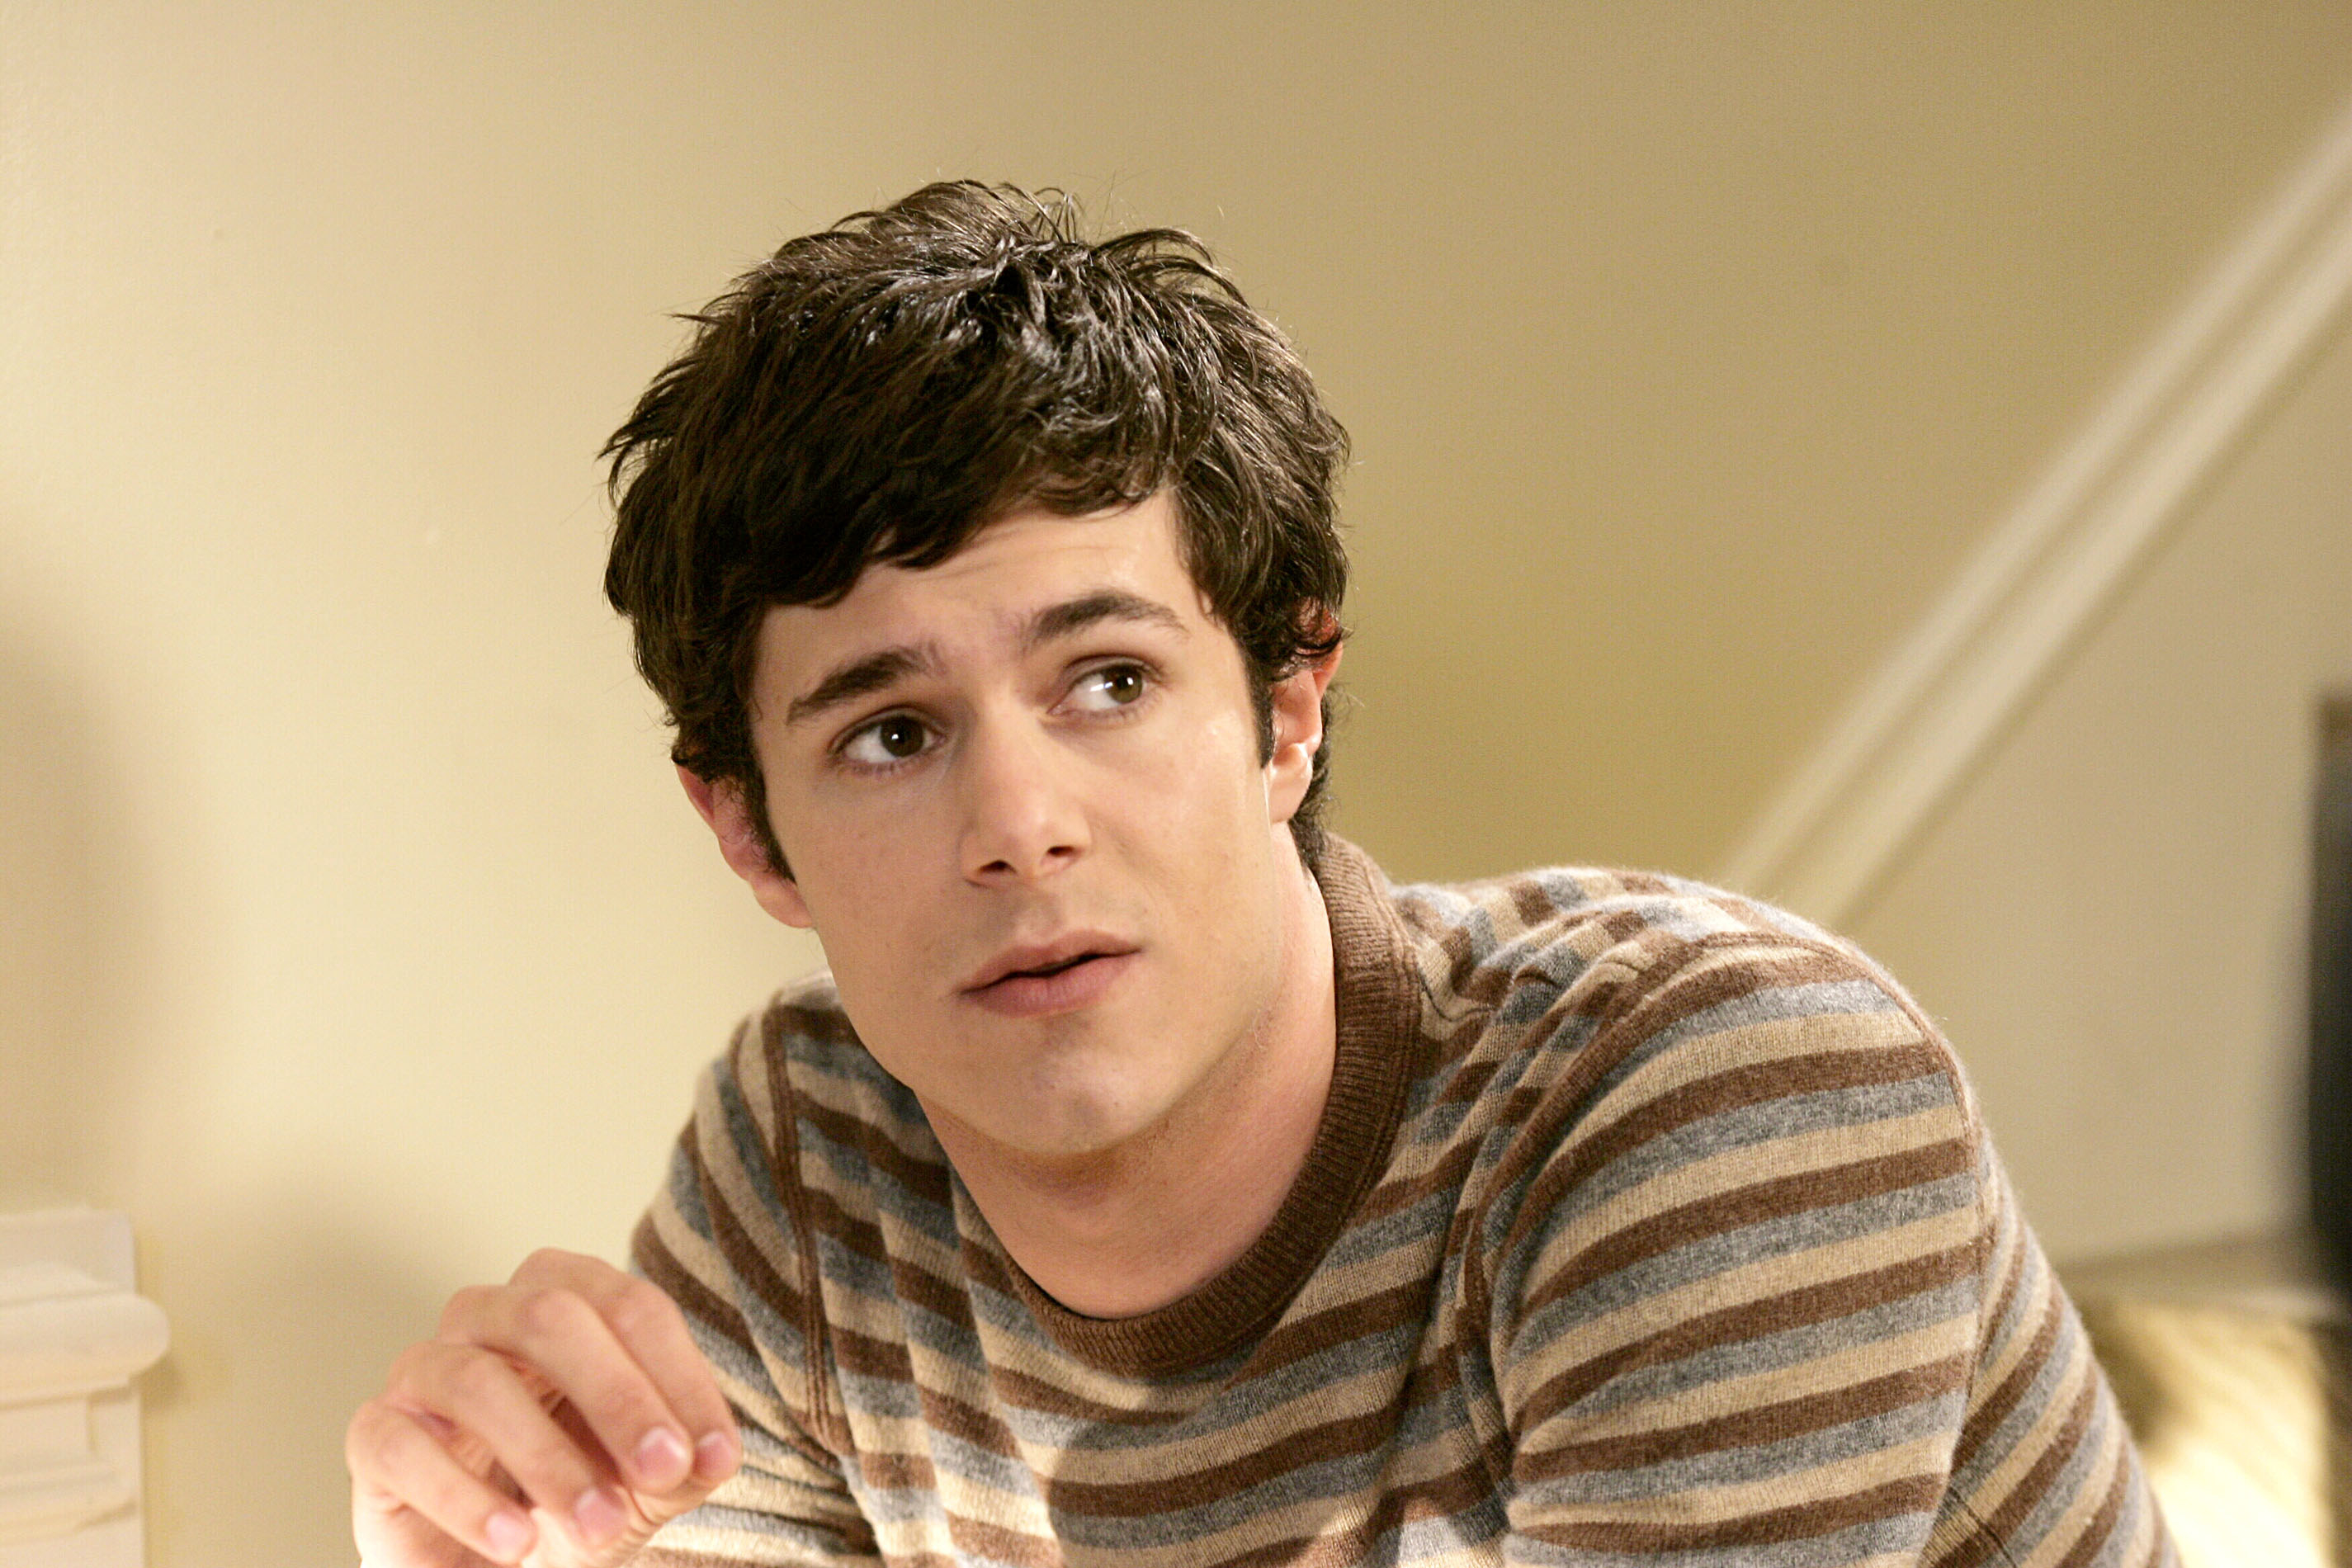 Adam Brody looks up while wearing a striped T-shirt